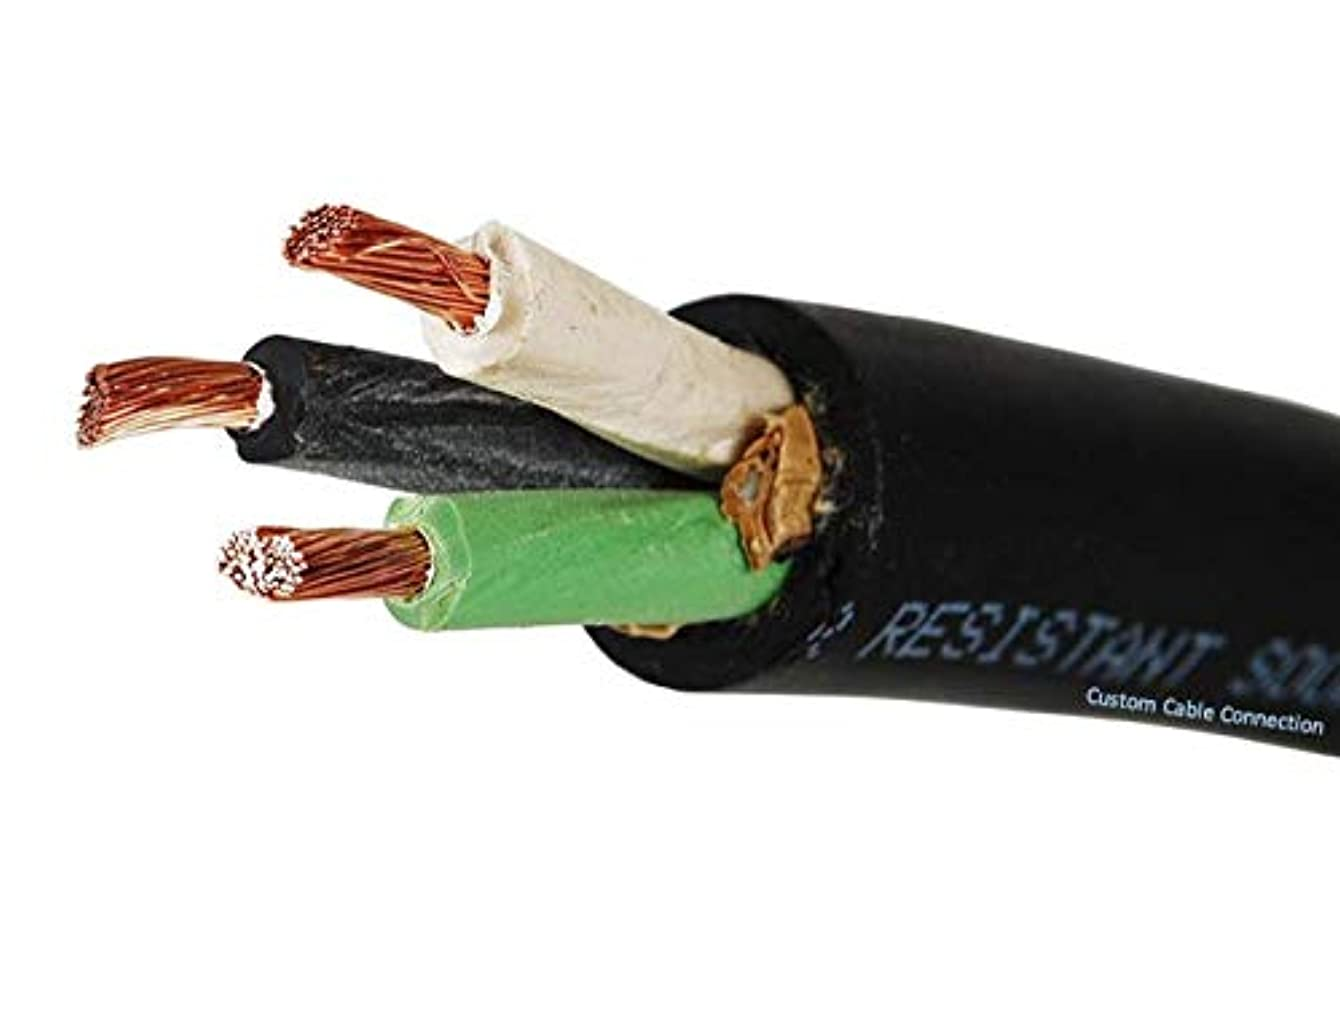 Custom Cable Connection 16/3 SOOW 16 AWG 3 Conductor 600 Volt Portable Power Cable - 25 Foot Roll in a Bag